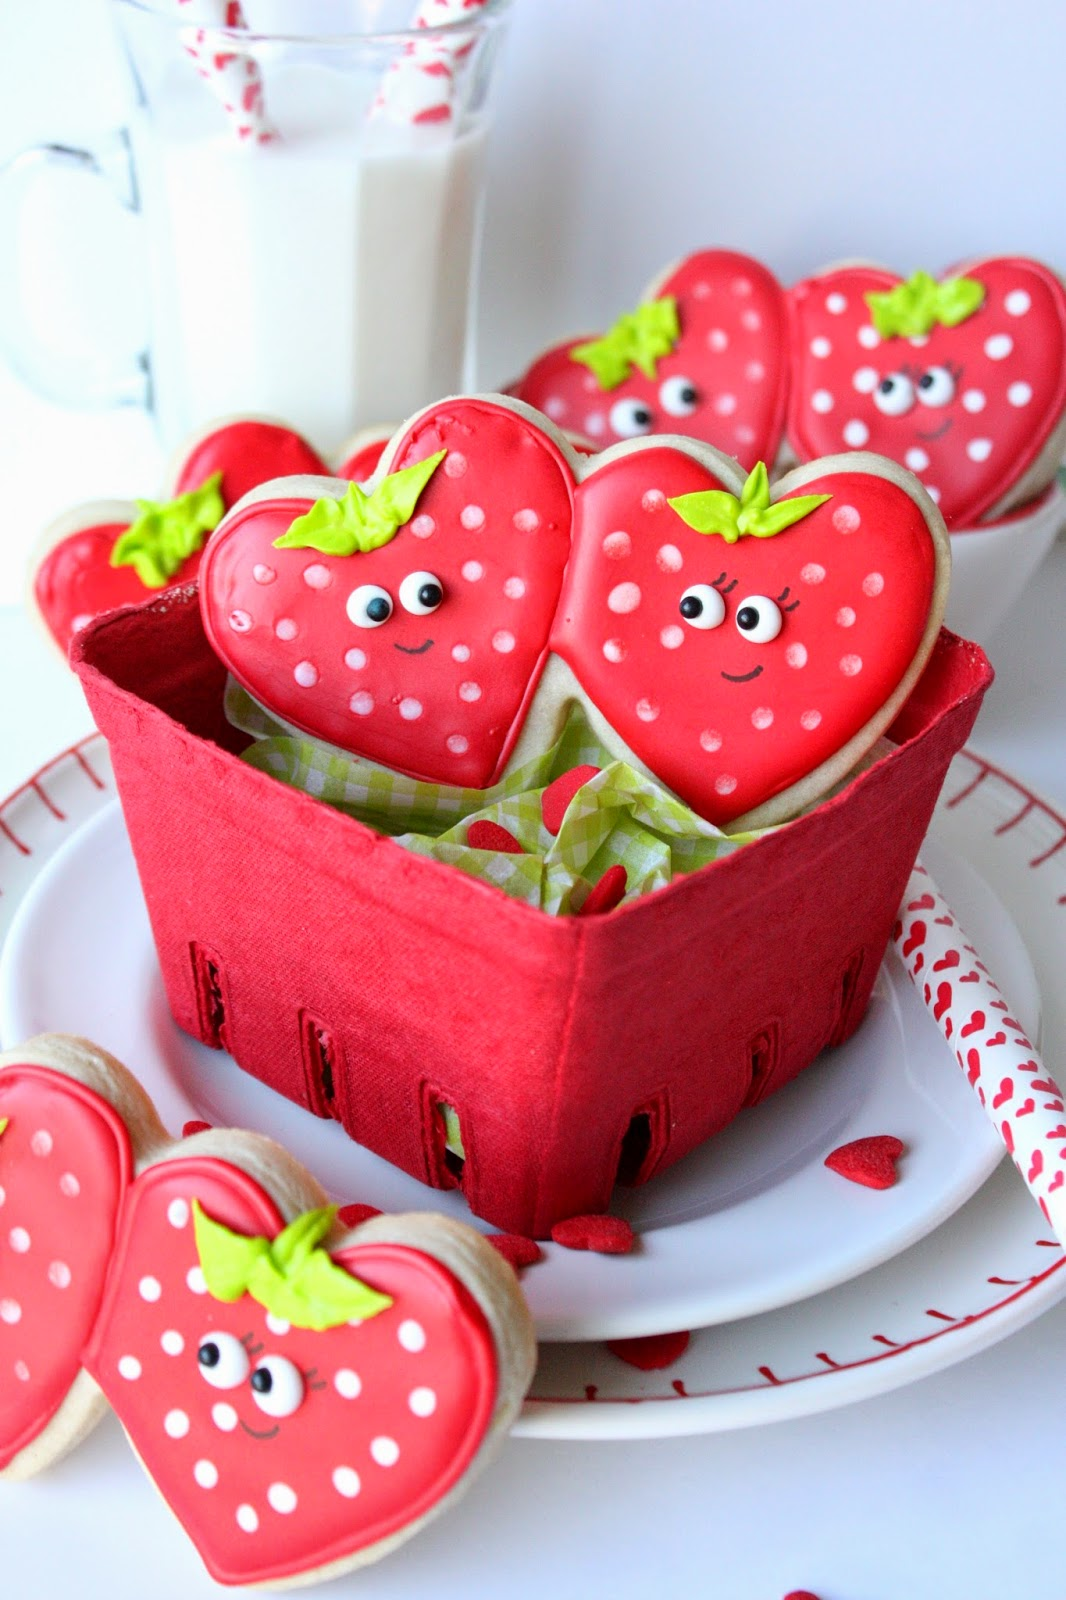 Sweethearts Cakes And Cookies